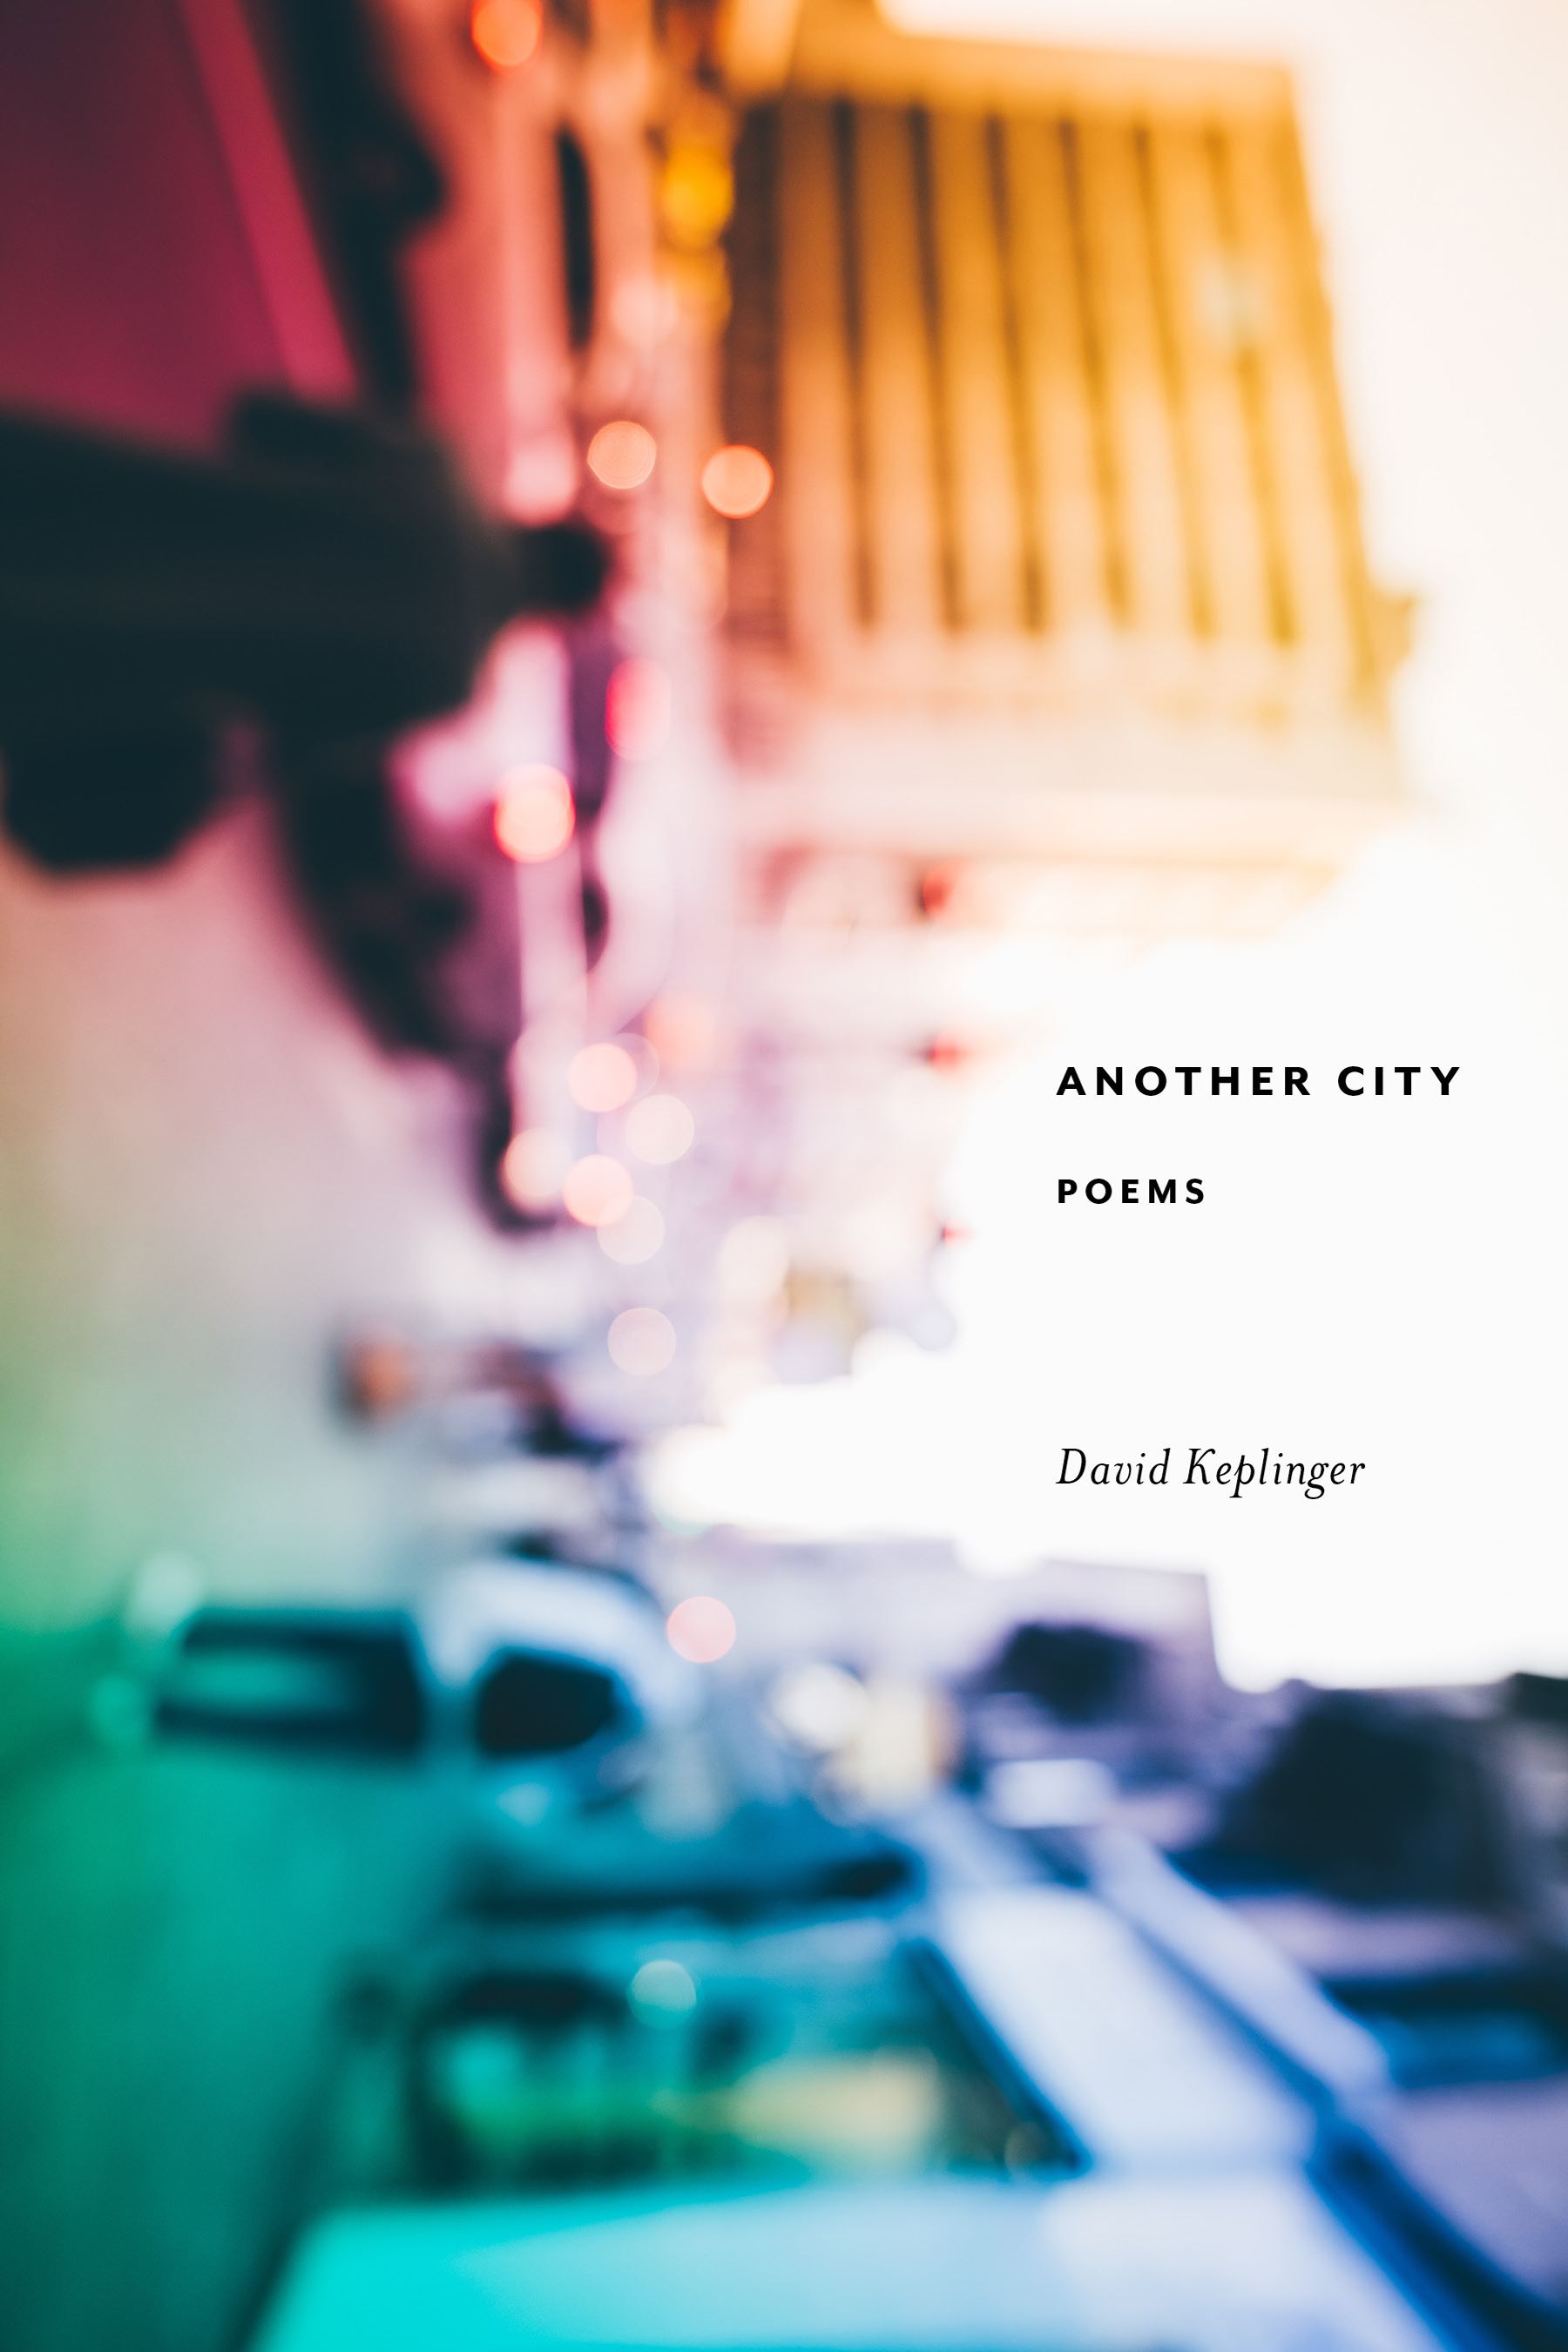 David Keplinger's Another City